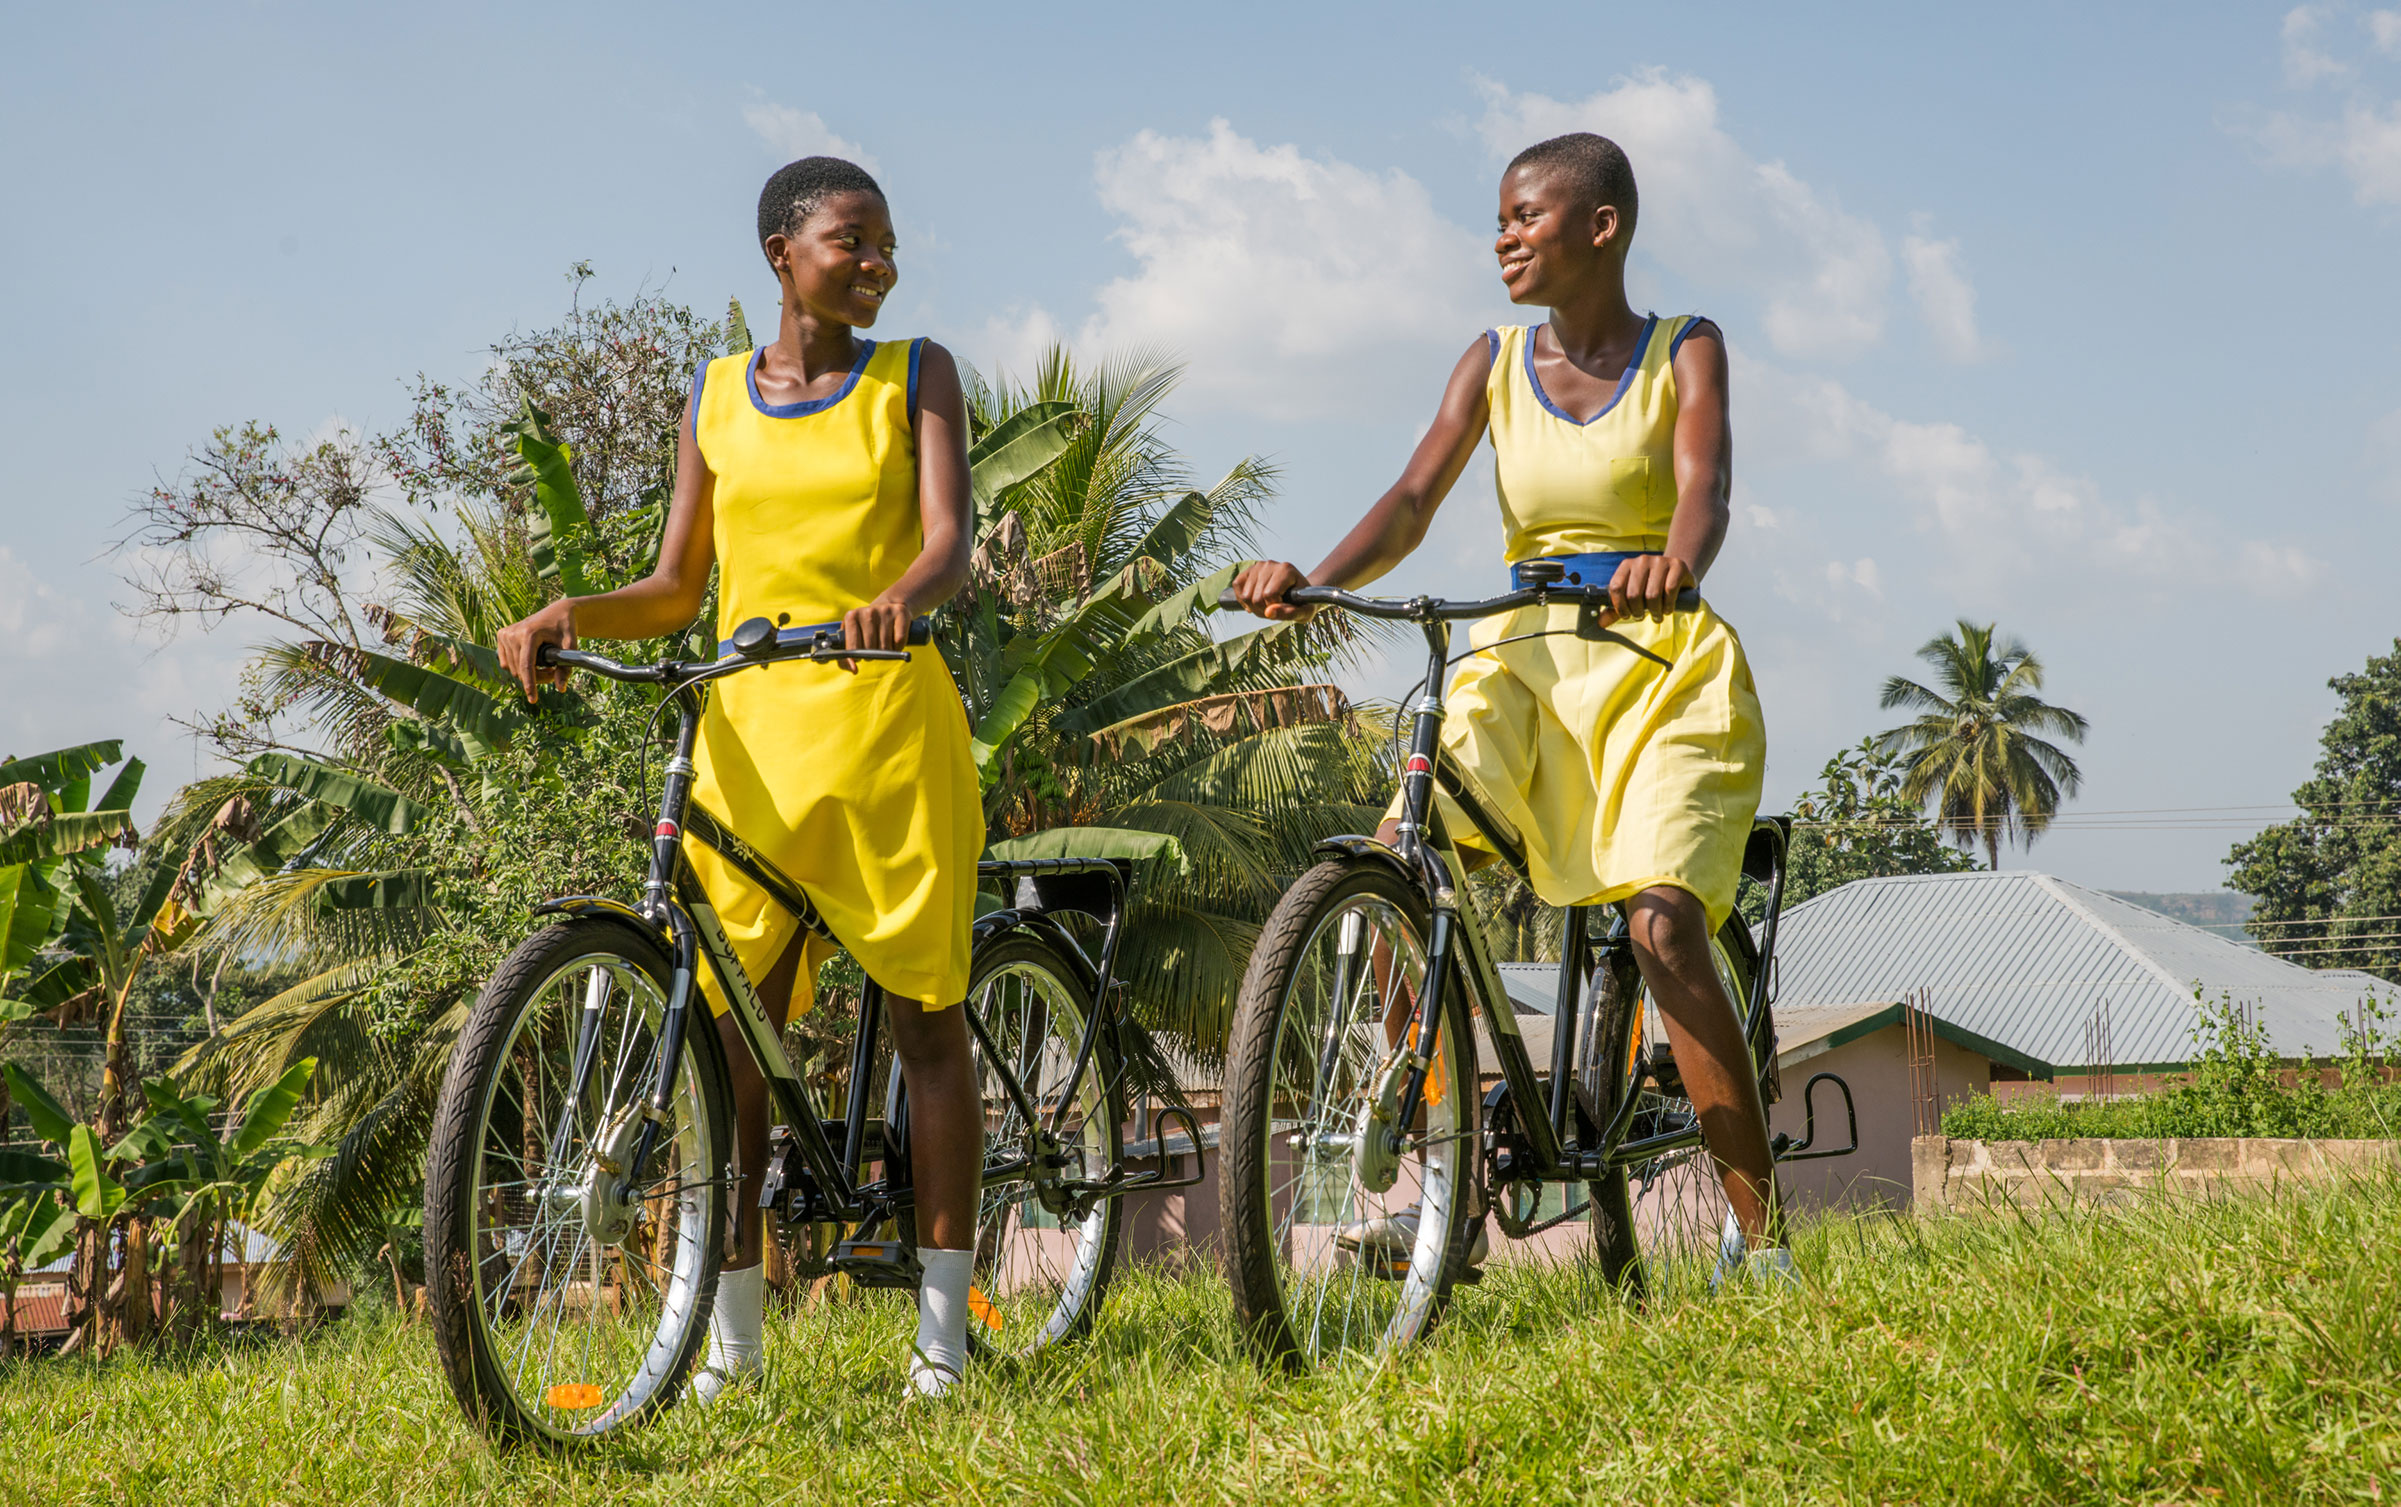 Created by The Hive in 2008, the Cadbury Bicycle Factory has been going strong for a full decade now. Over that time, Canadians have come together to help build and deliver over 30,000 specially designed bicycles to students in Ghana, the country where Cadbury sources much of it's cocoa. To celebrate the 10th Anniversary of this amazing program we worked with Grammy-nominated Ghanaian singer, Rocky Dawuni, to create a song and accompanying music video that would capture the joy that these bicycles bring to the students that receive them. And we shot the video in 360° so that viewers could look around and really immerse themselves in this special place.